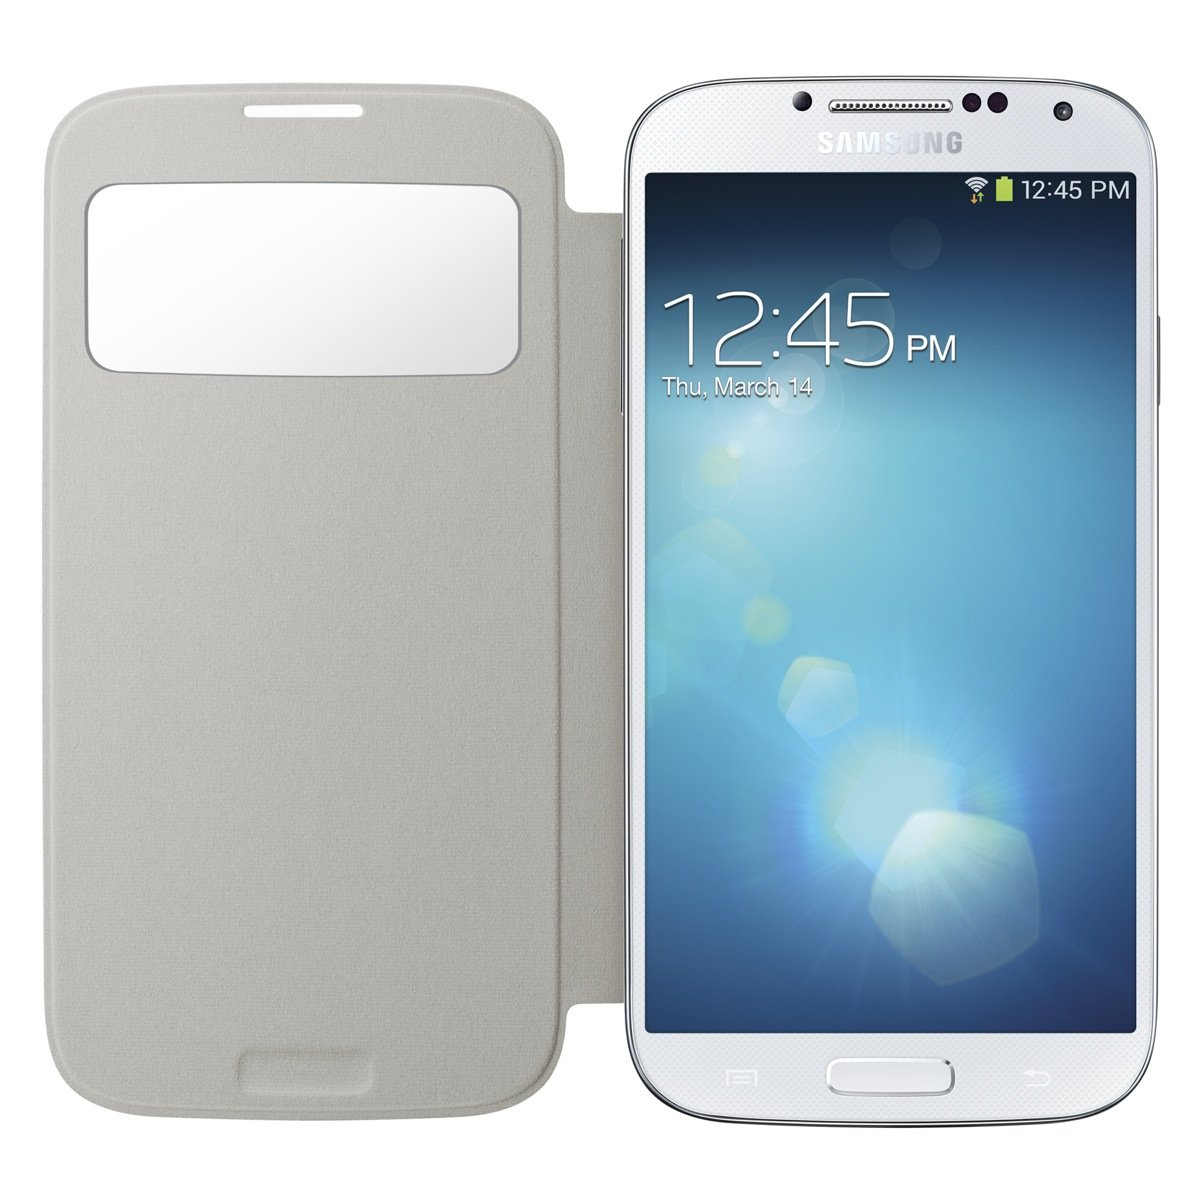 Amazon samsung galaxy s4 s view flip cover folio case white amazon samsung galaxy s4 s view flip cover folio case white cell phones accessories ccuart Image collections